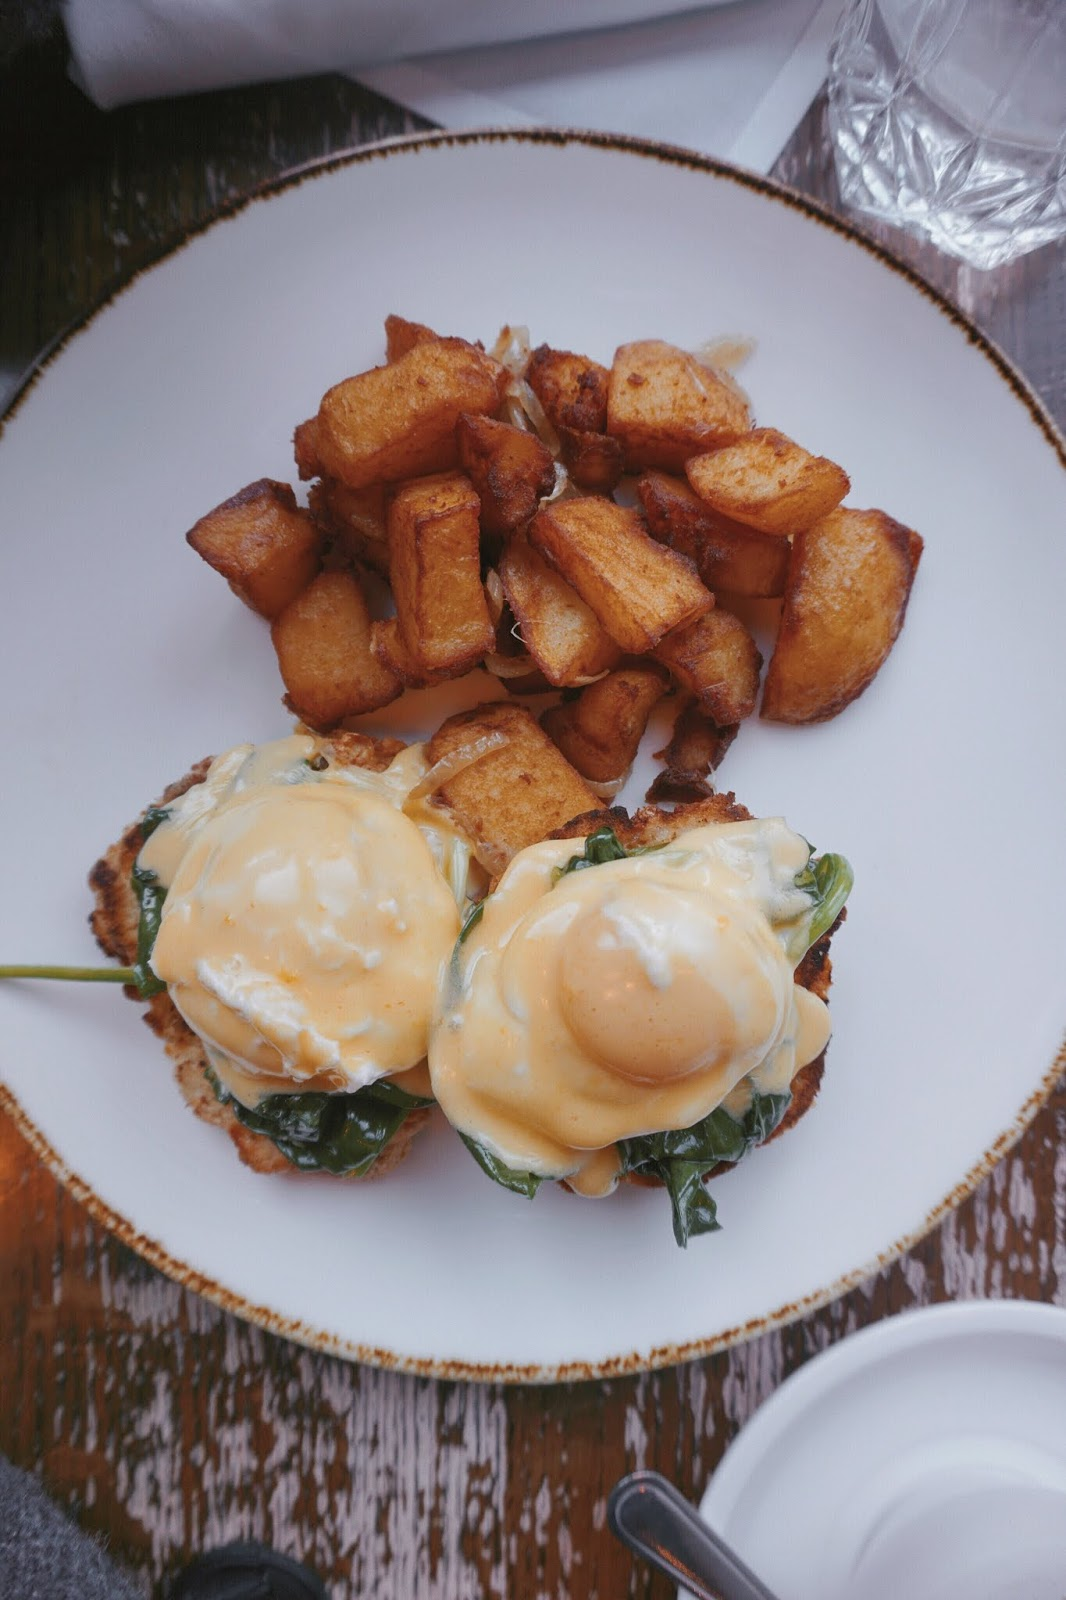 Best Brunch Spots in Toronto